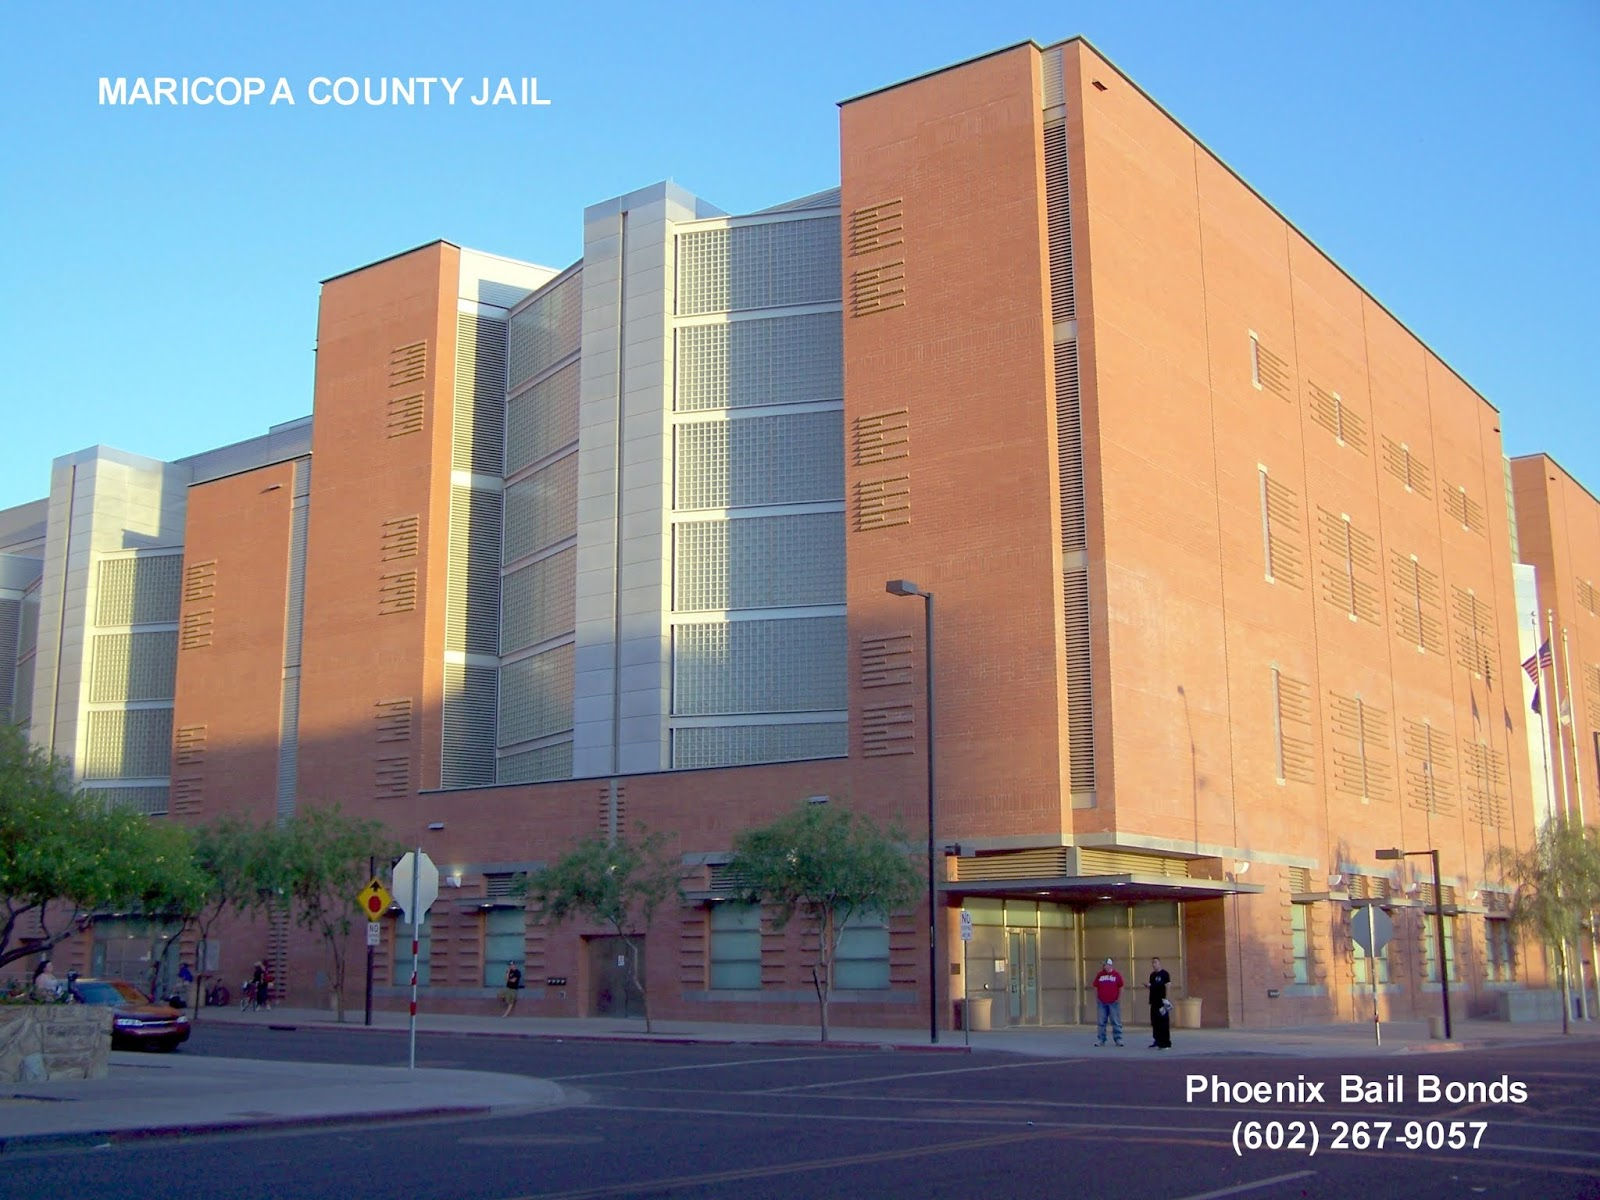 inmate information phone number maricopa county